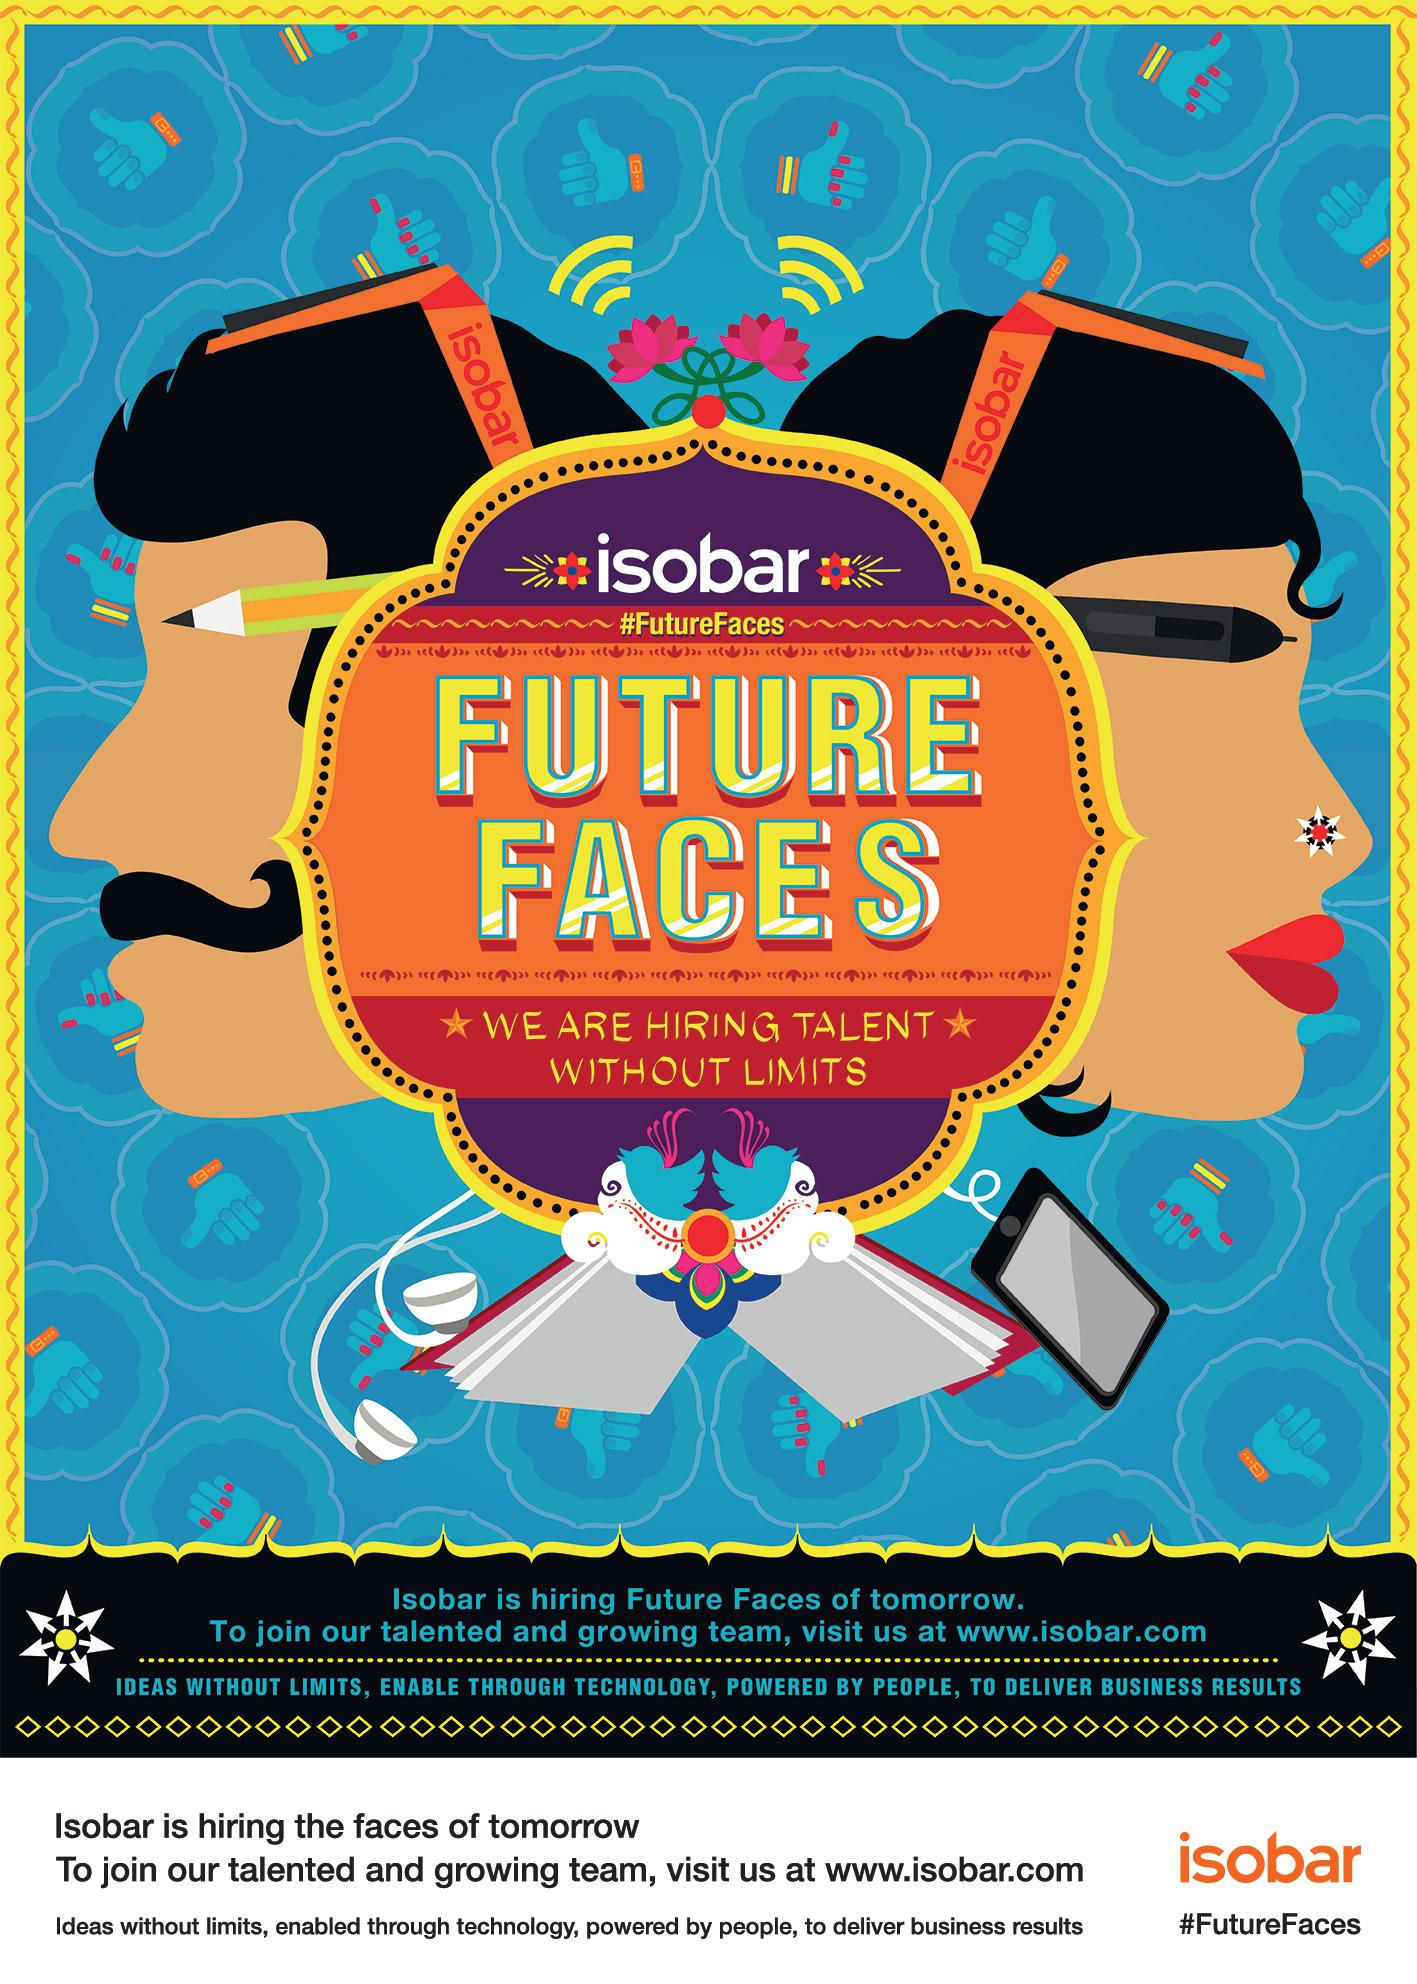 Isobar is hiring! Check out our current #career opportunities here http://t.co/DppmpWNIUK #FutureFaces http://t.co/AJmDiD7X0g